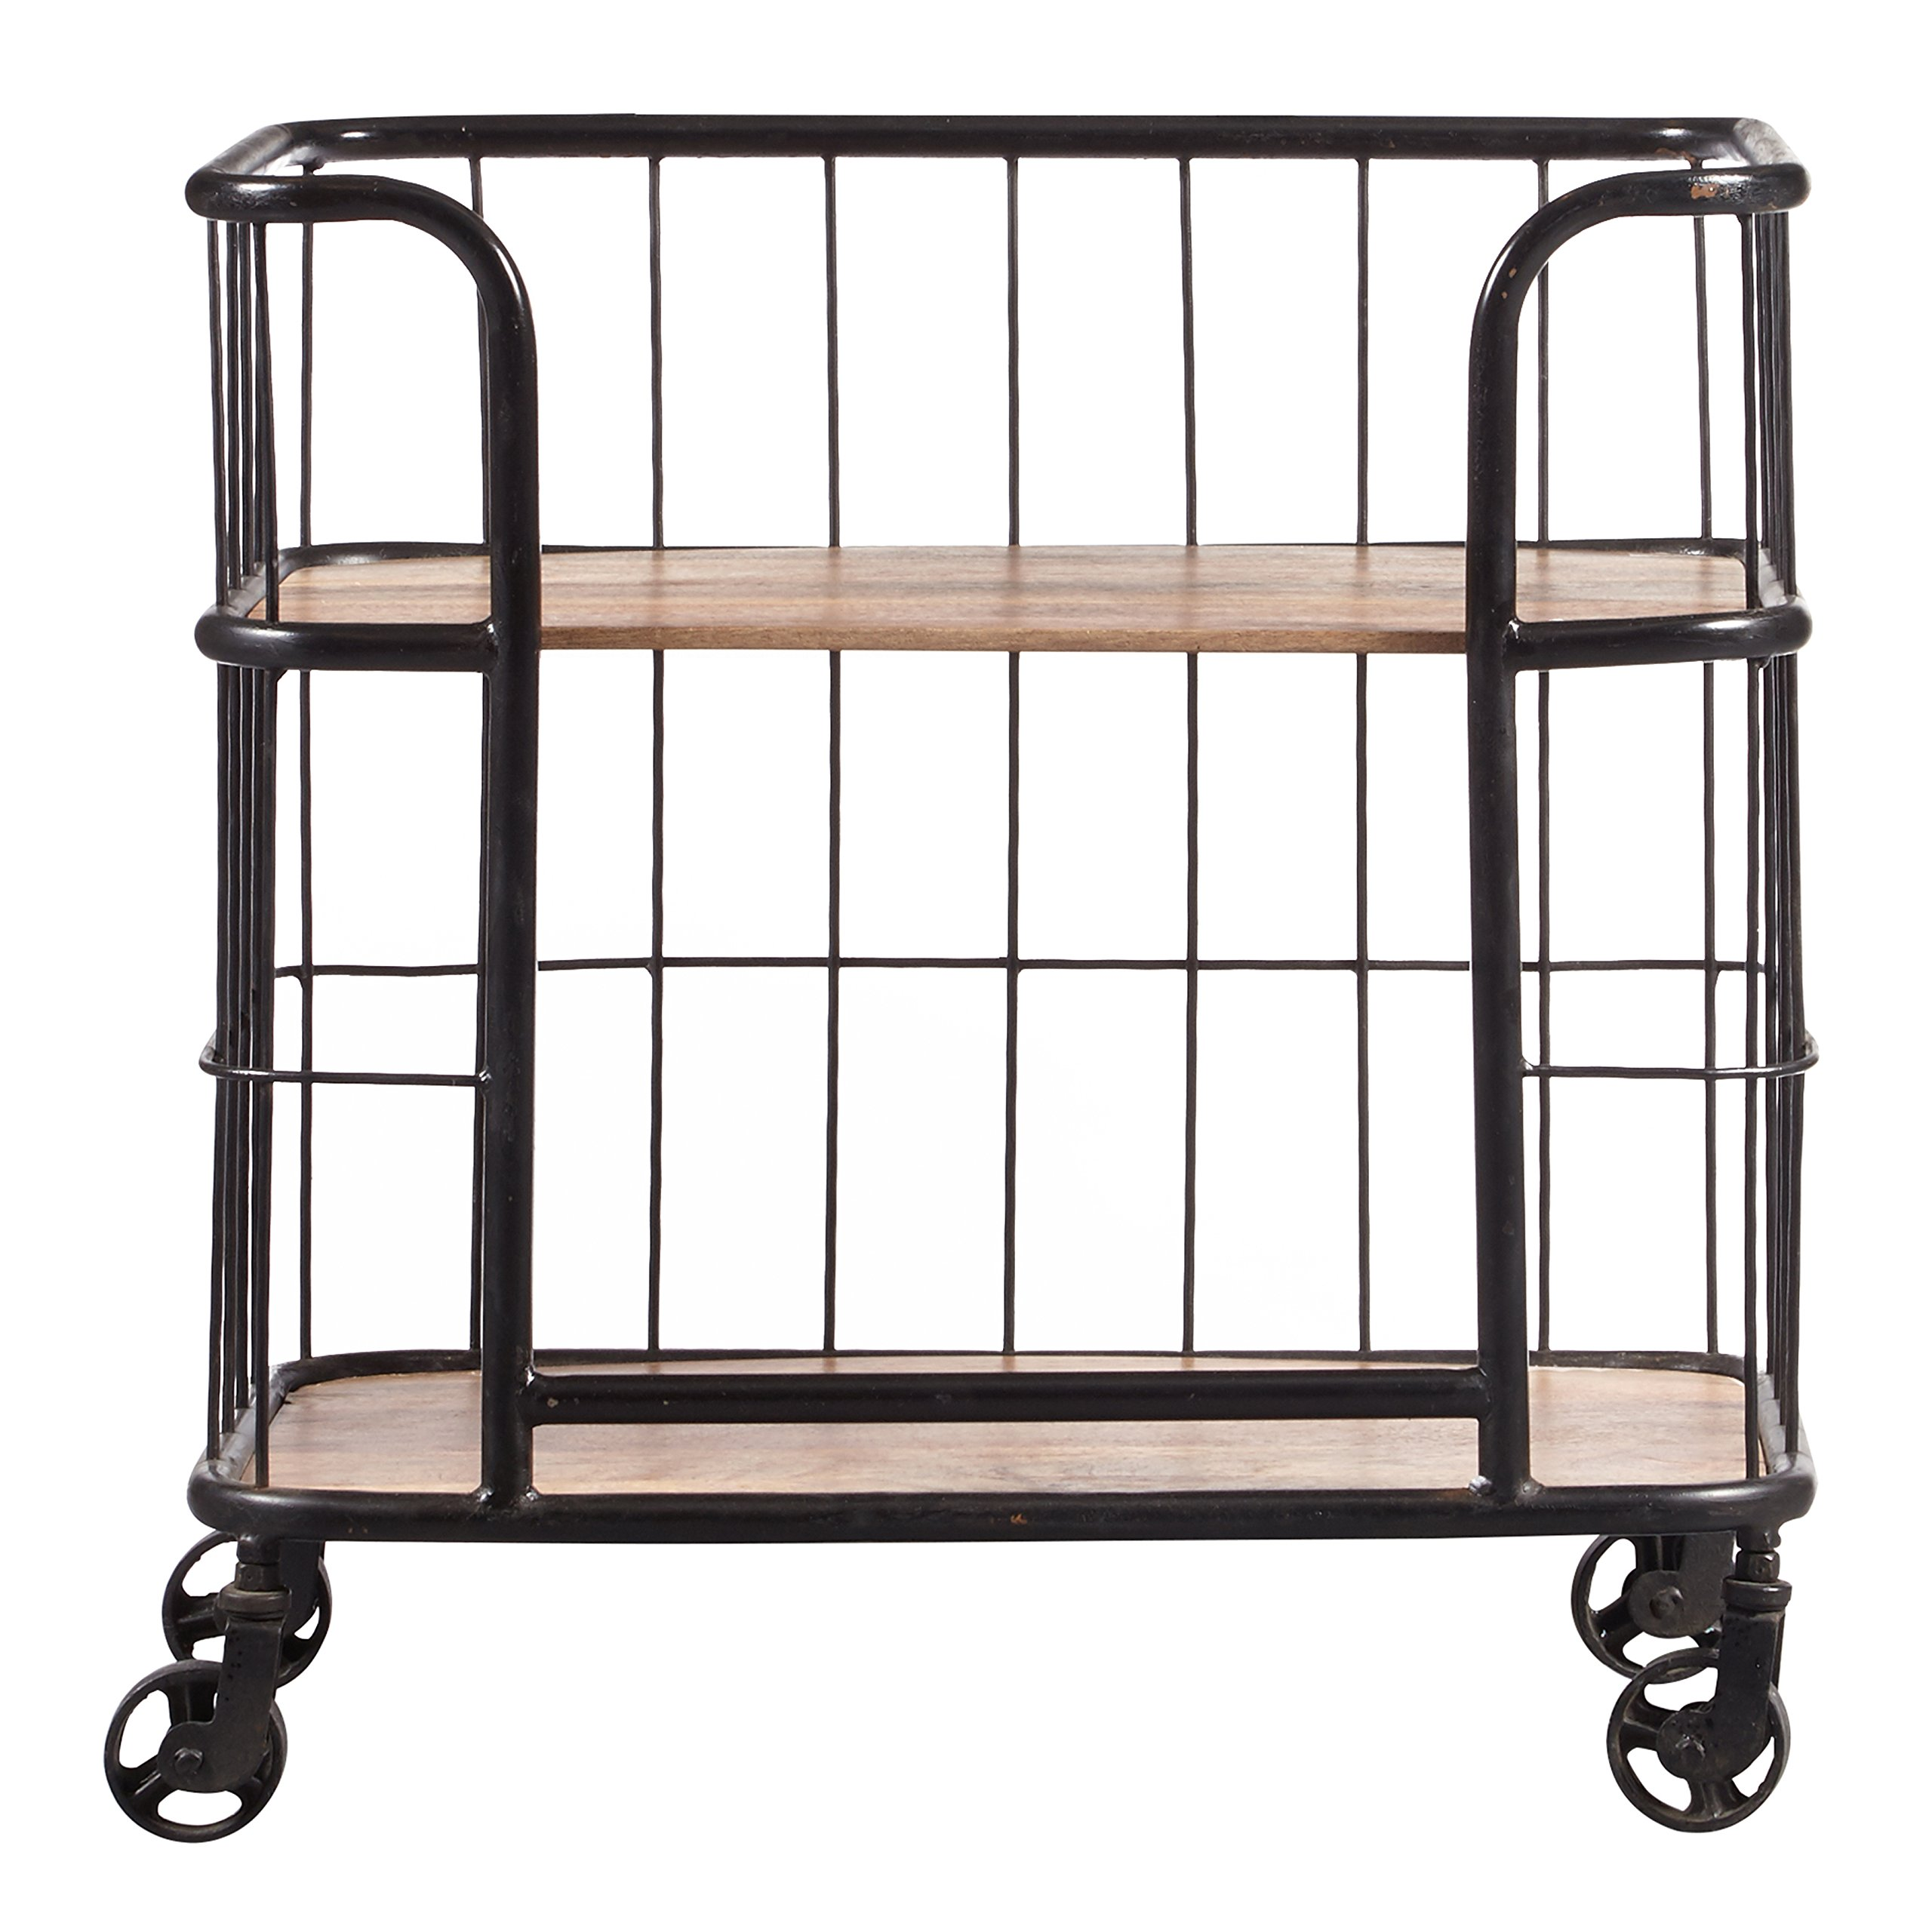 Pulaski Industrial Wood & Metal Trolley bar cart, Black by Pulaski